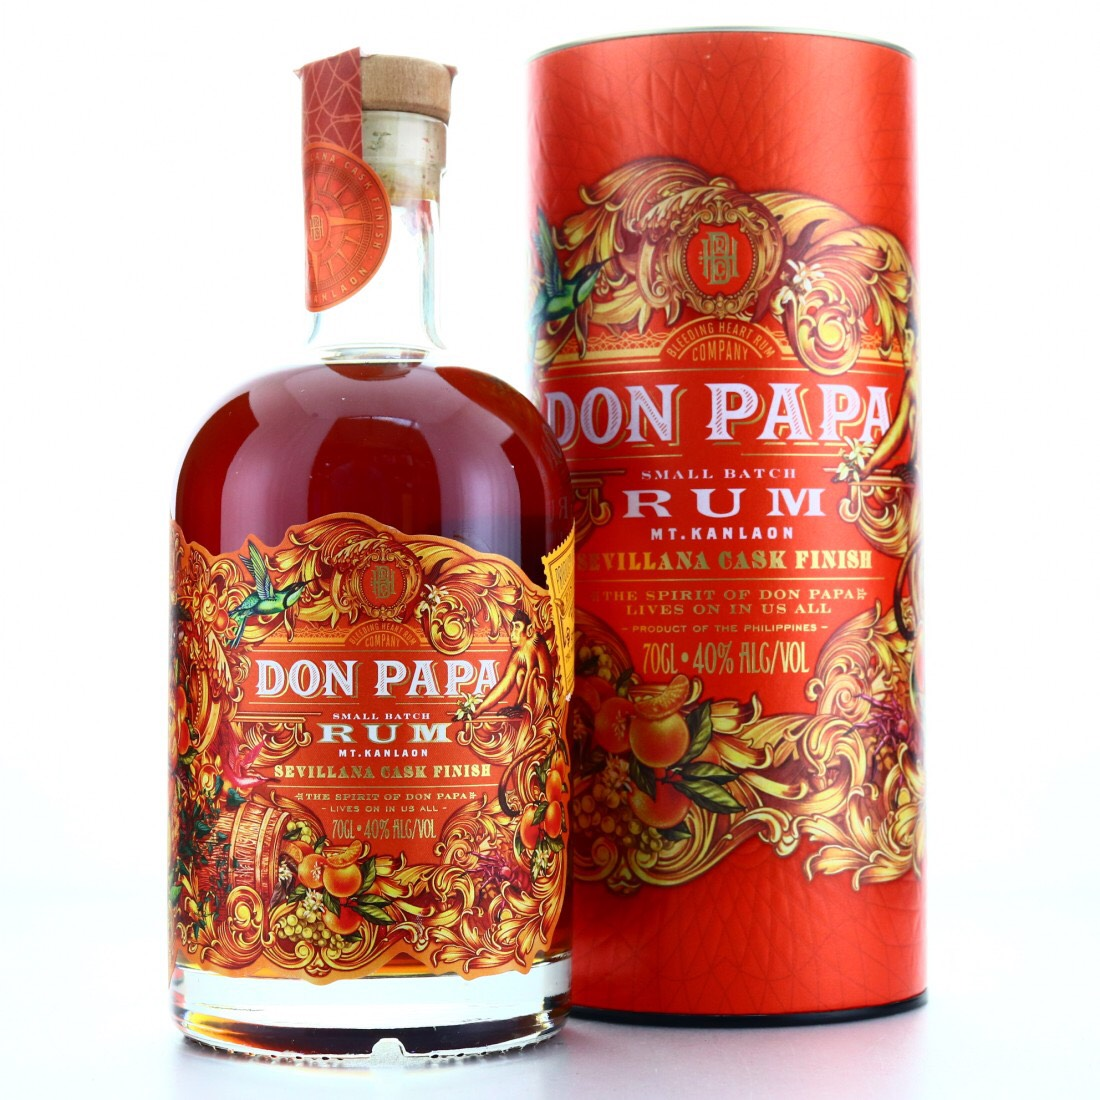 Bottle image of Don Papa Rum Sevillana Cask Finish